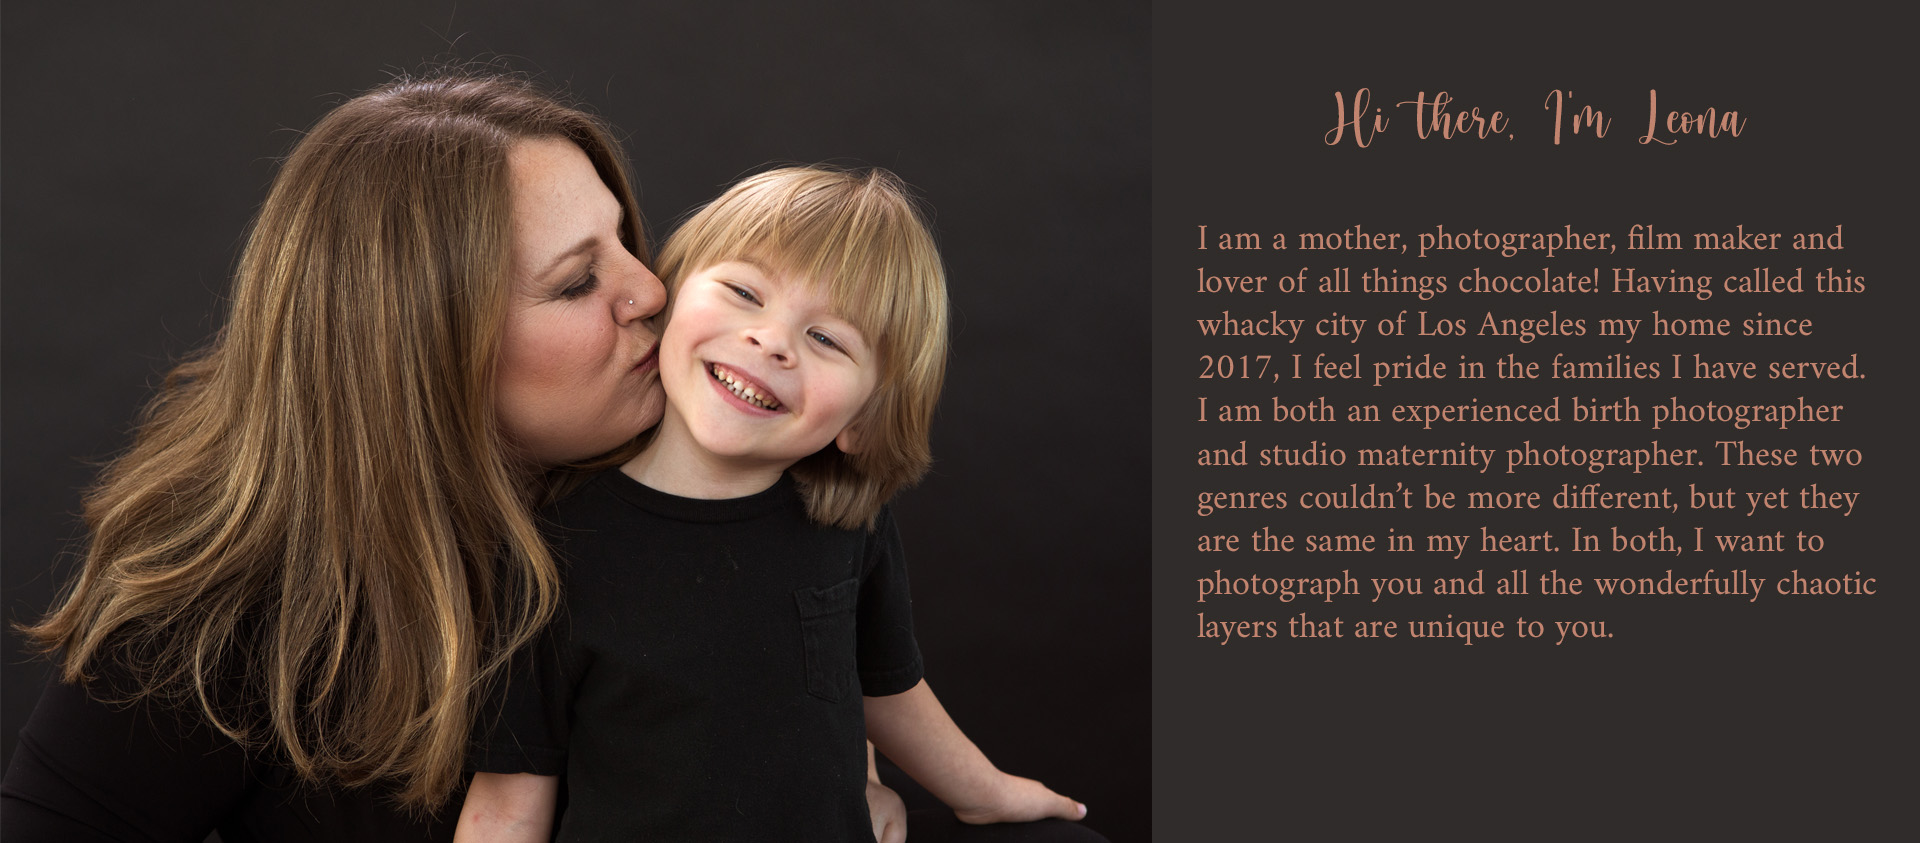 Color image and text describing Los Angeles birth and maternity photographer, Leona Darnell as she kisses her son.